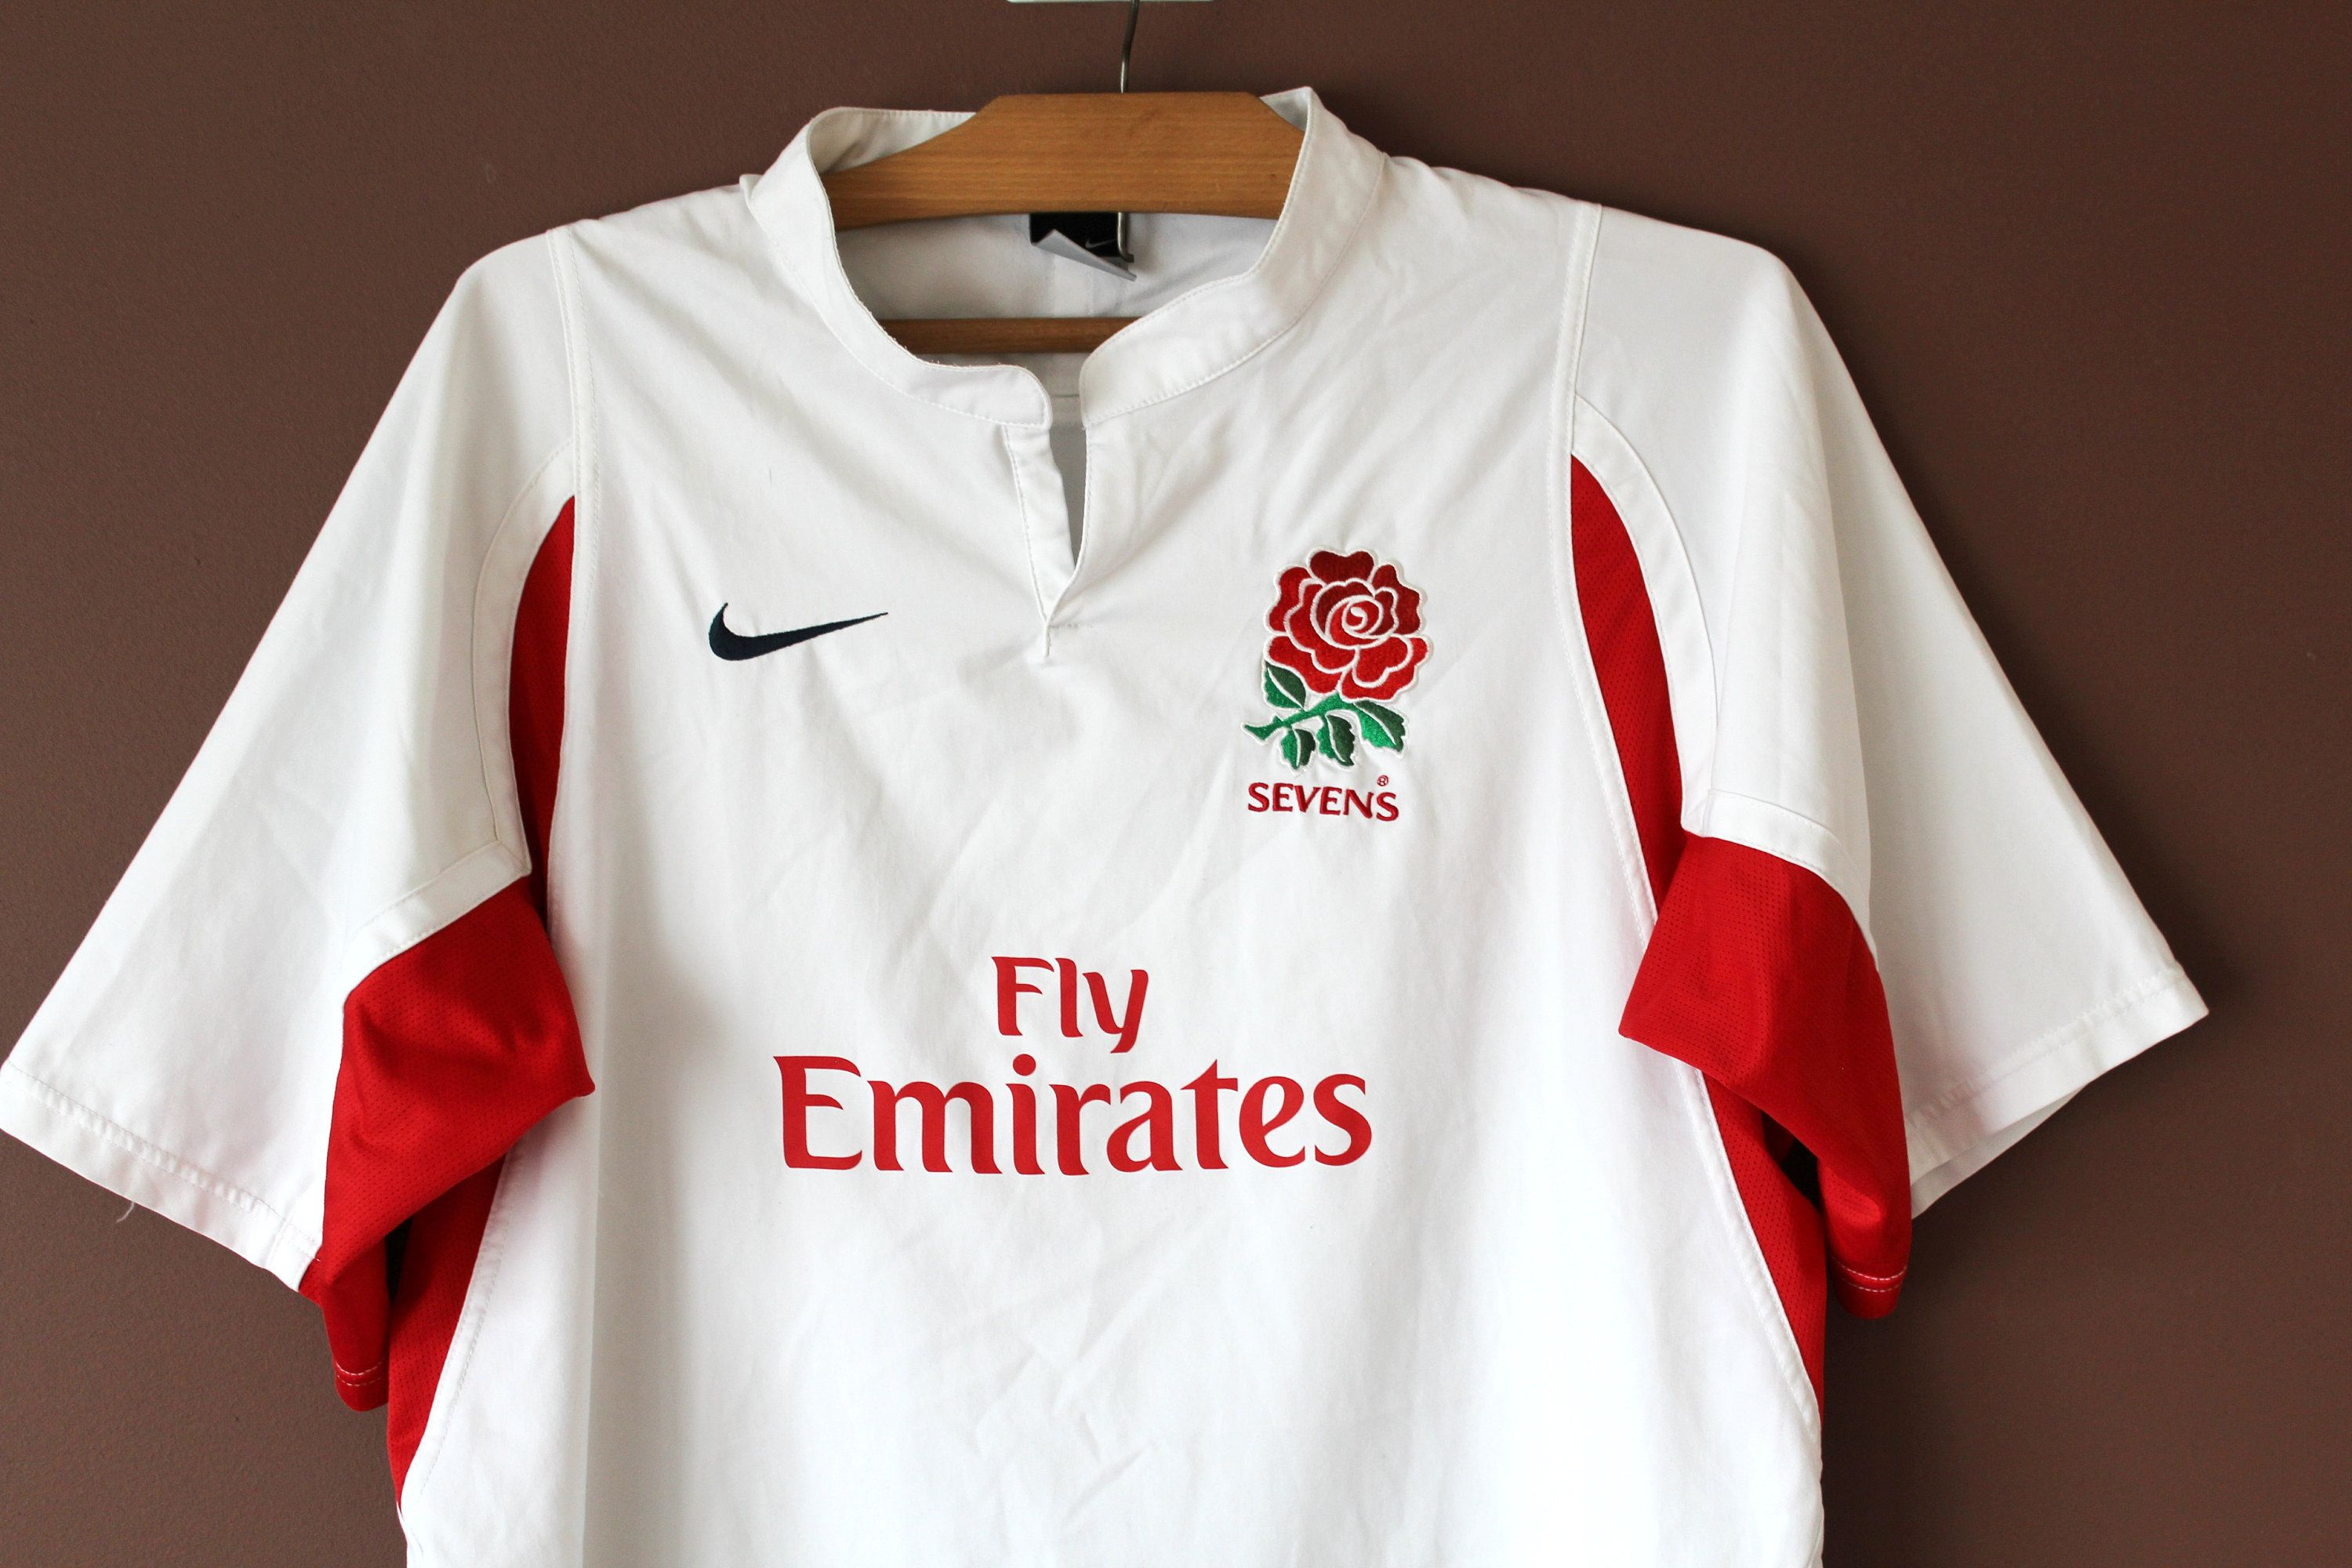 Vintage National England Rugby Team Shirt Nike Rugby Shirt White Red Nike Jersey Nike Training Shirt Nike Trikot England Rugby Team Rugby Team Rugby Shirt